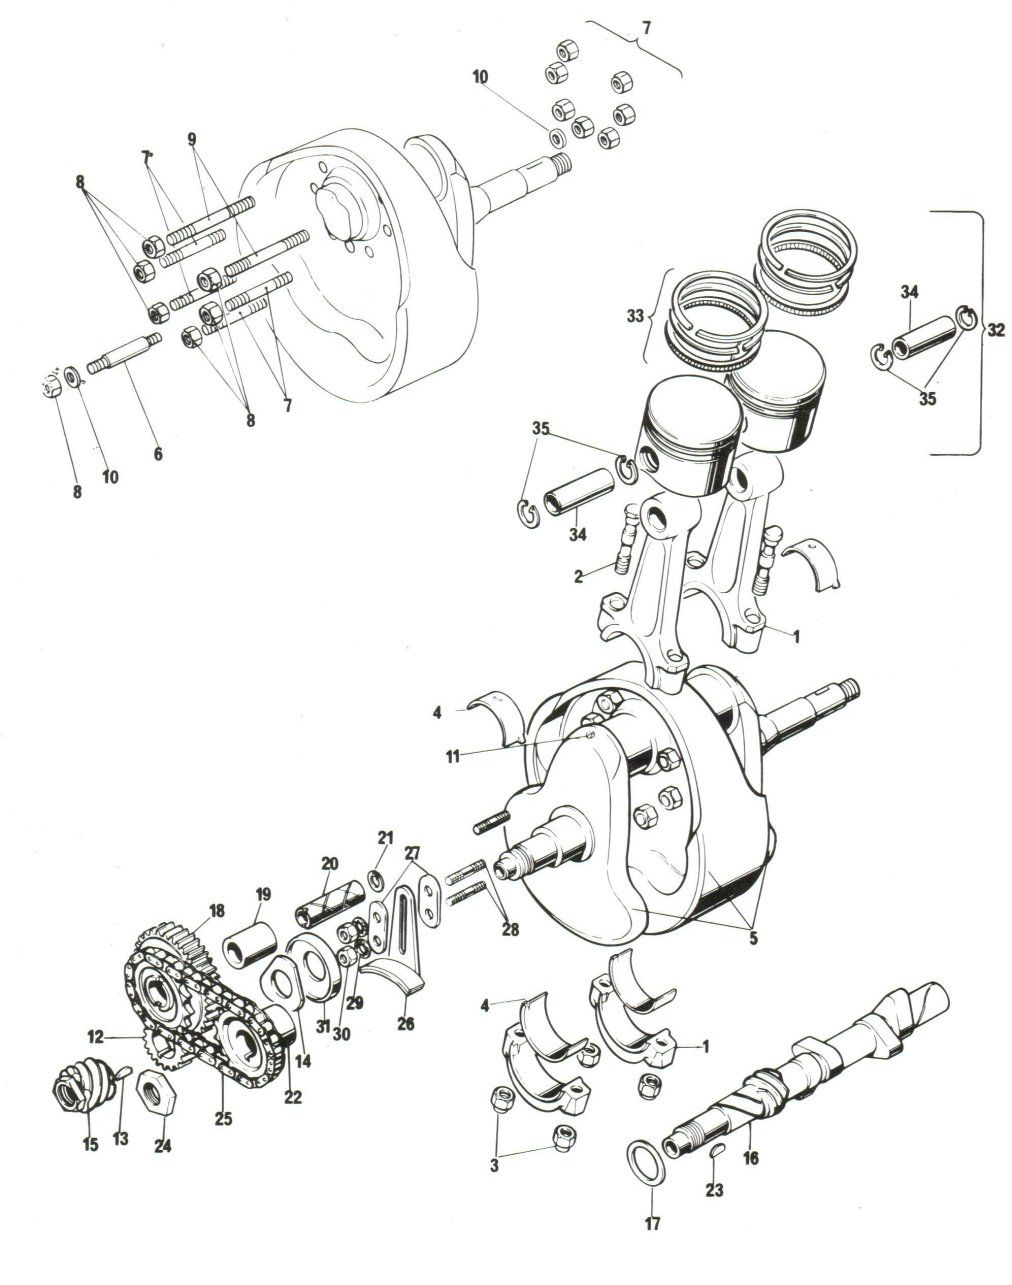 Piston exploded view